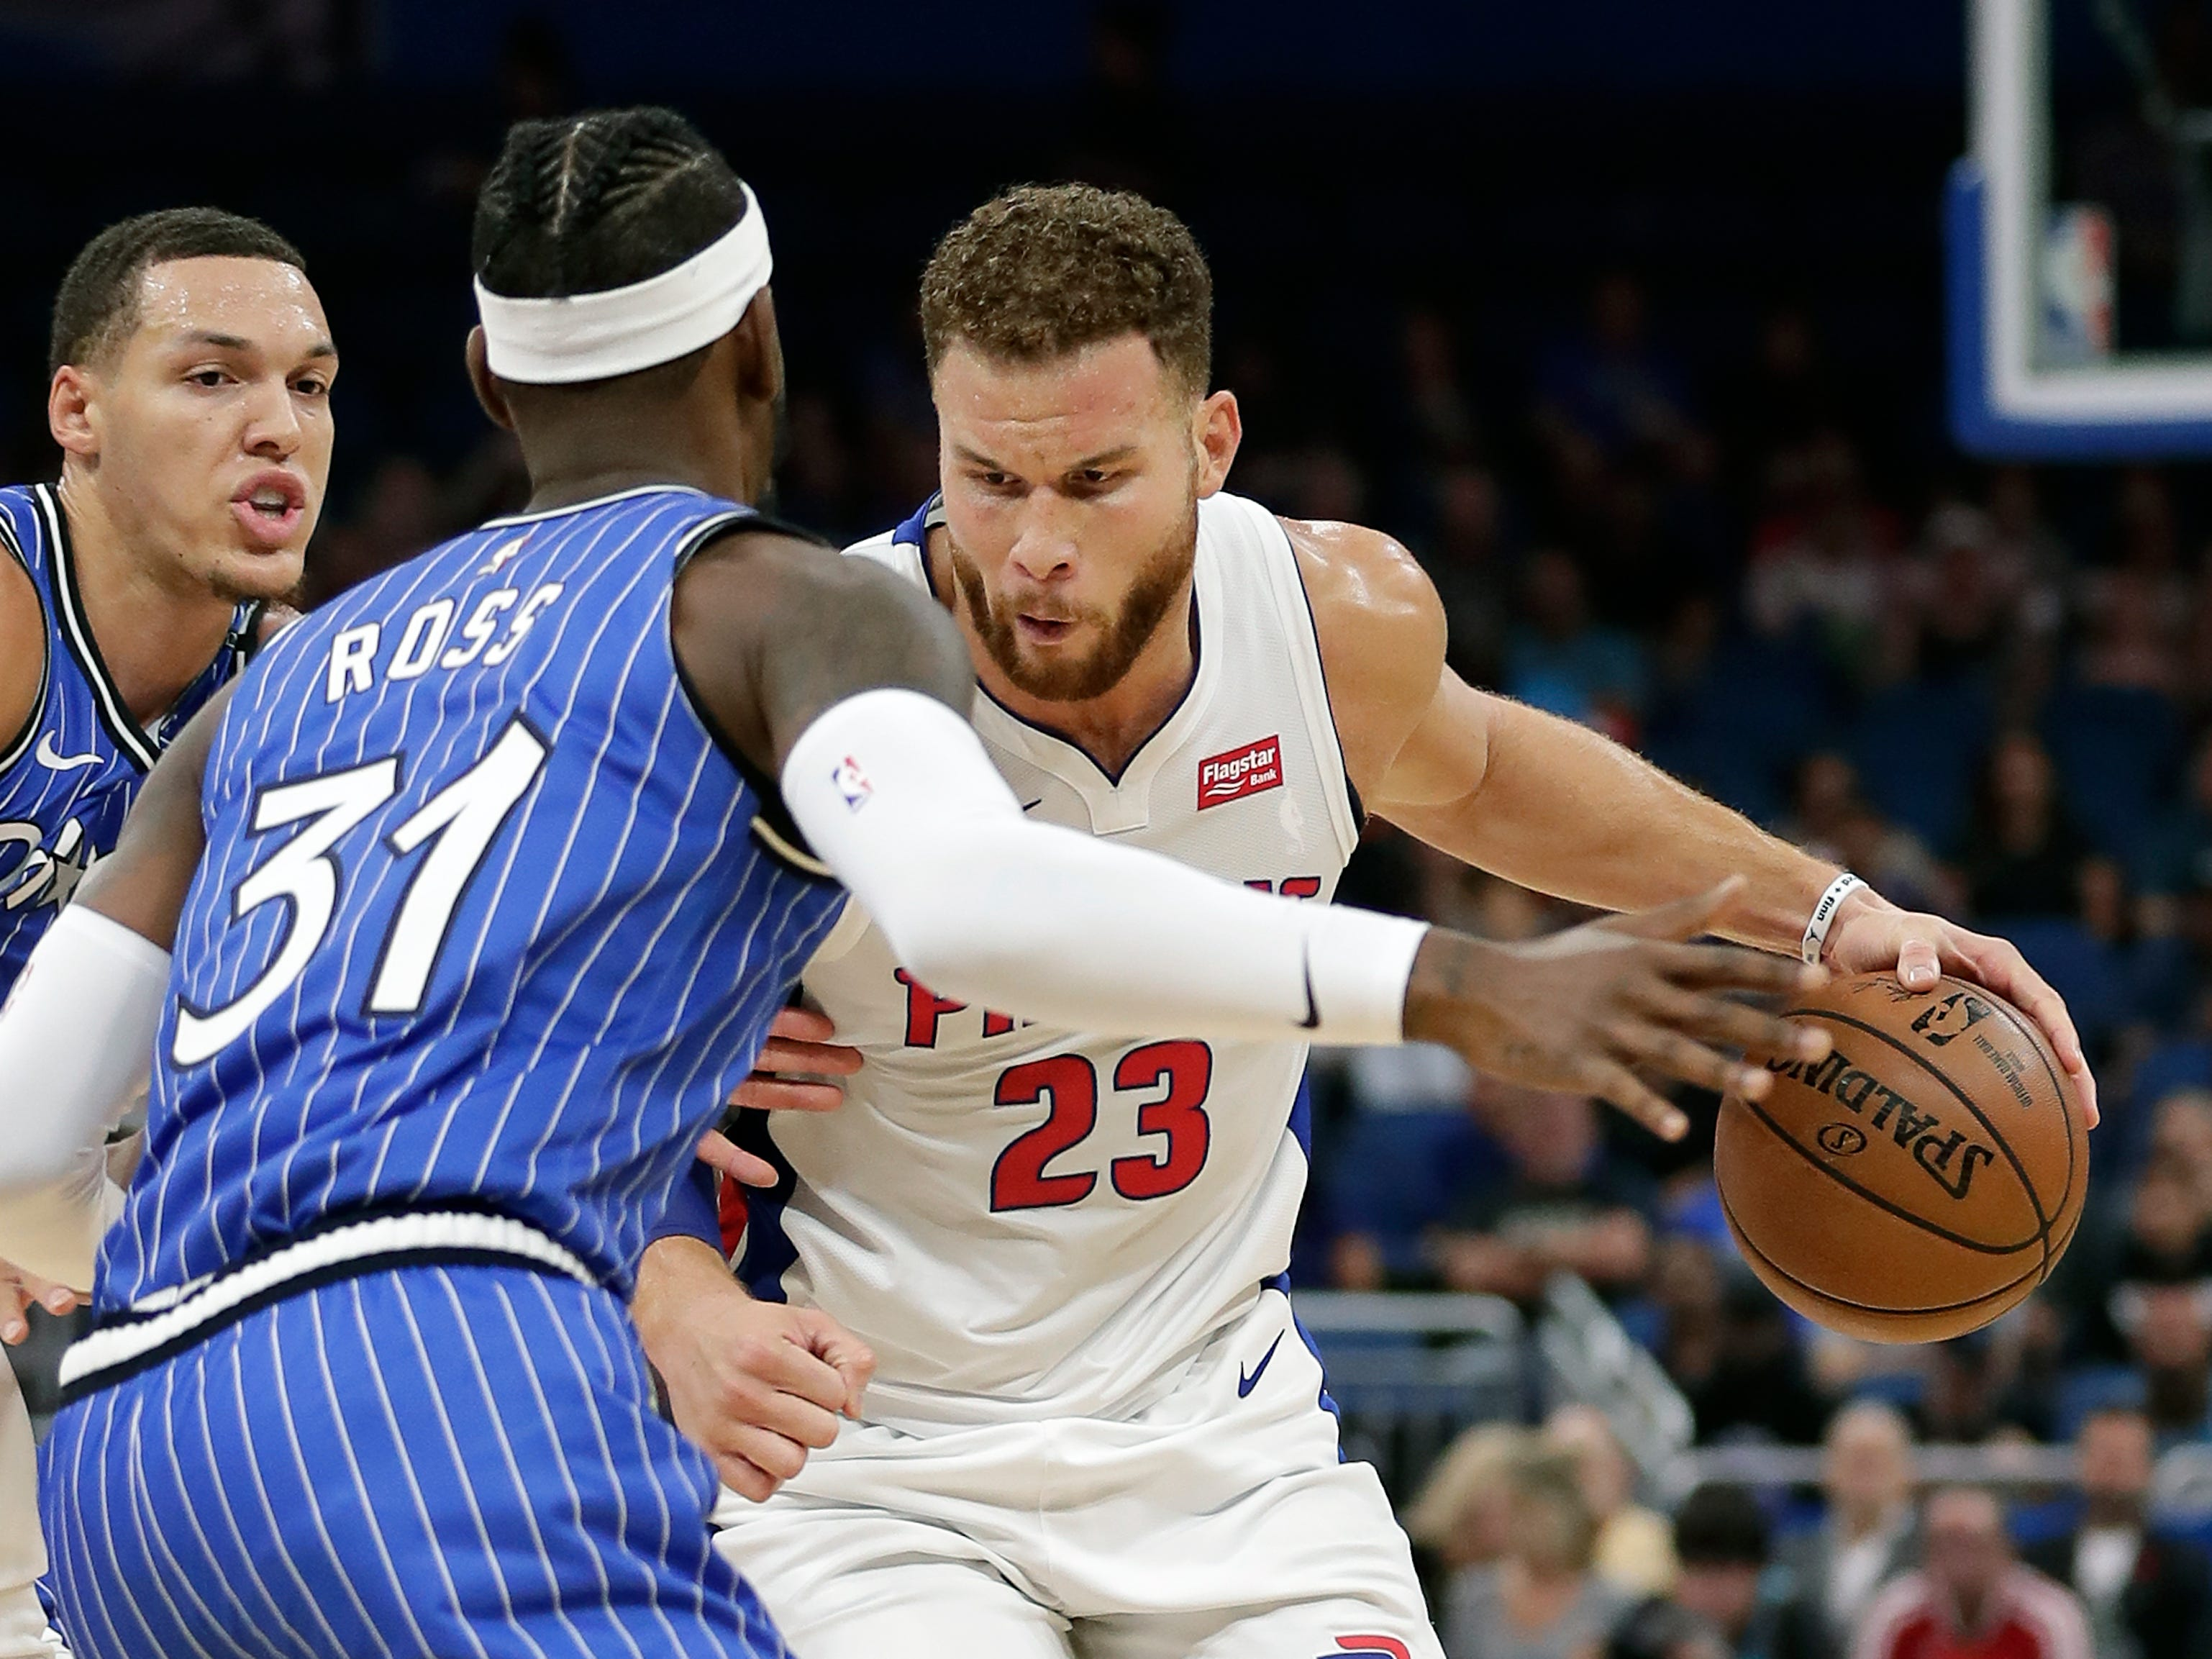 Detroit Pistons' Blake Griffin (23) looks for a way around Orlando Magic's Aaron Gordon, left, and Terrence Ross (31) during the first half of an NBA basketball game, Wednesday, Nov. 7, 2018, in Orlando, Fla.